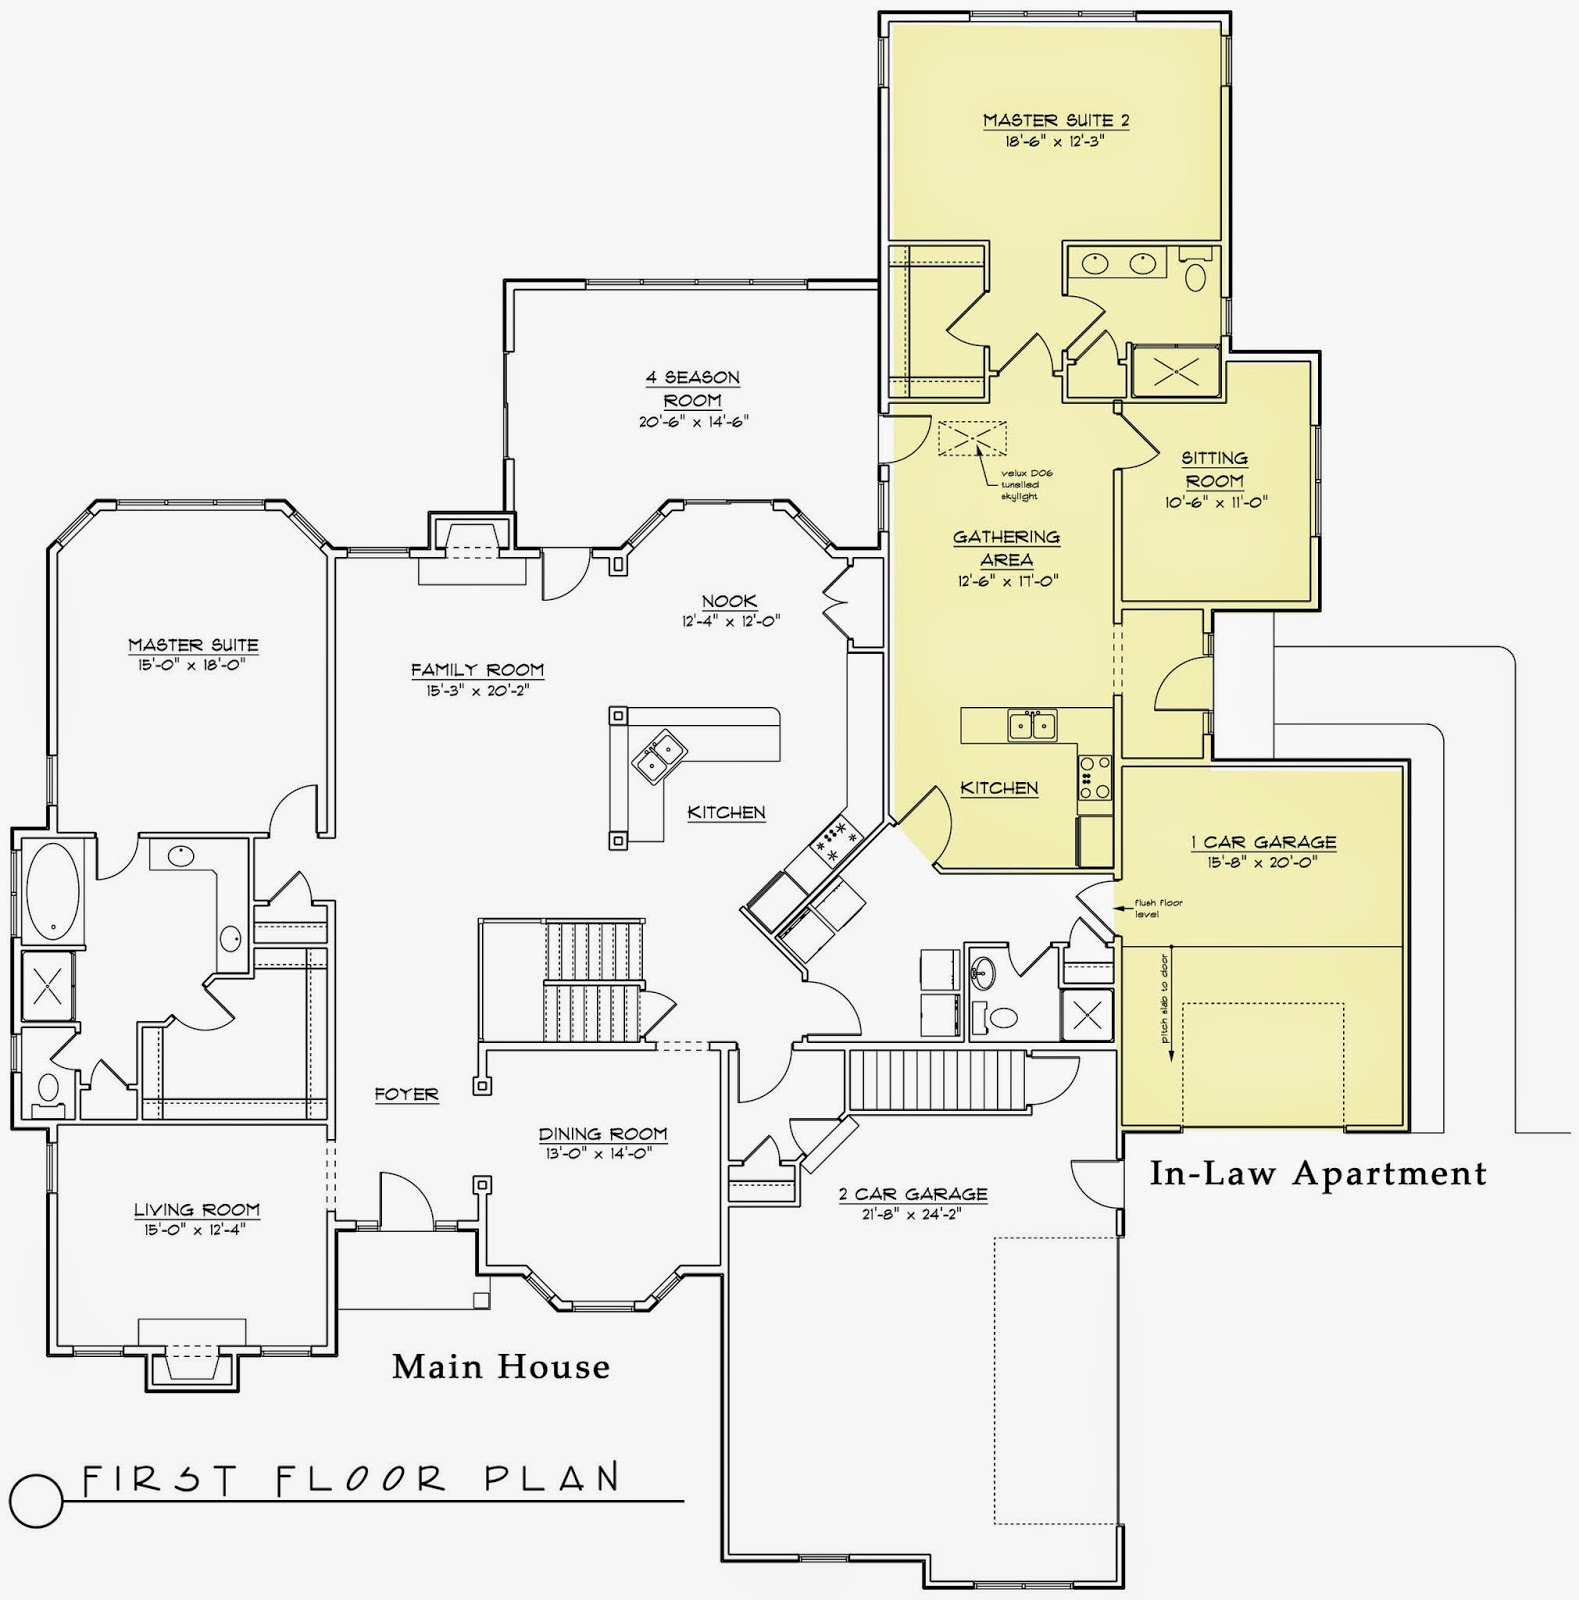 2 story apartment floor plans joy studio design gallery for Modular home floor plans with inlaw apartment